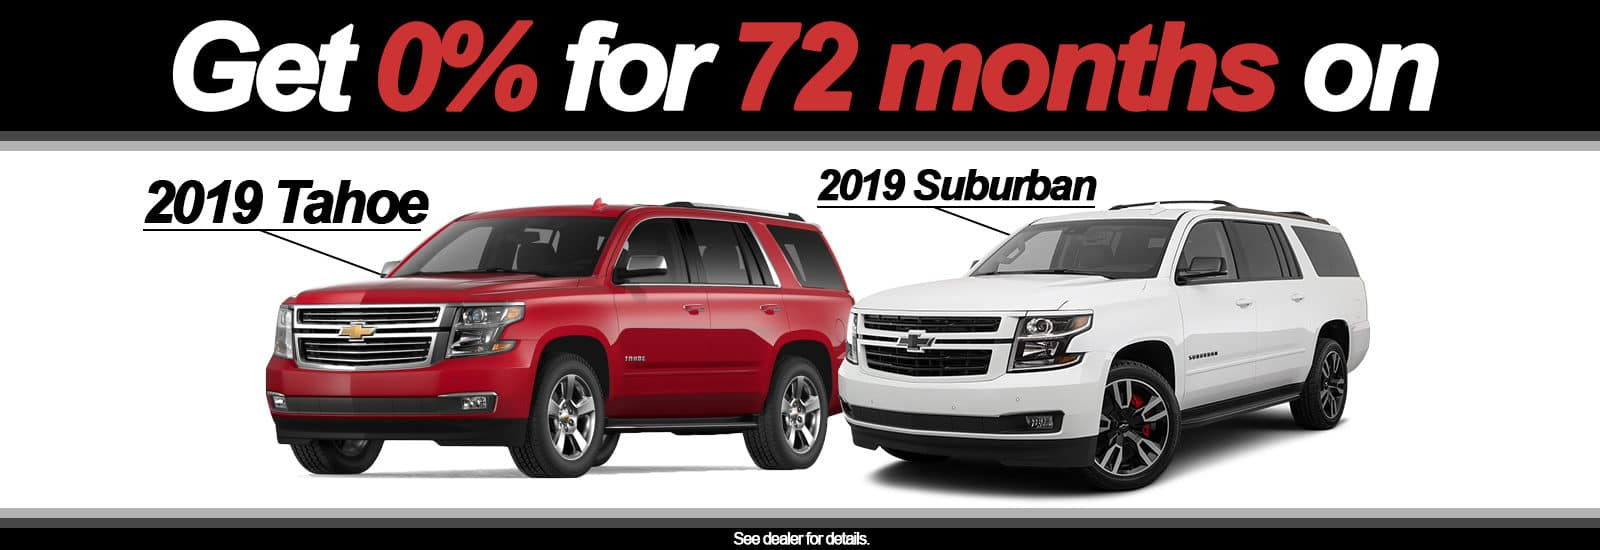 Buy Here Pay Here Commercial Truck Dealers >> Ray Skillman Discount Chevrolet Indianapolis Indiana